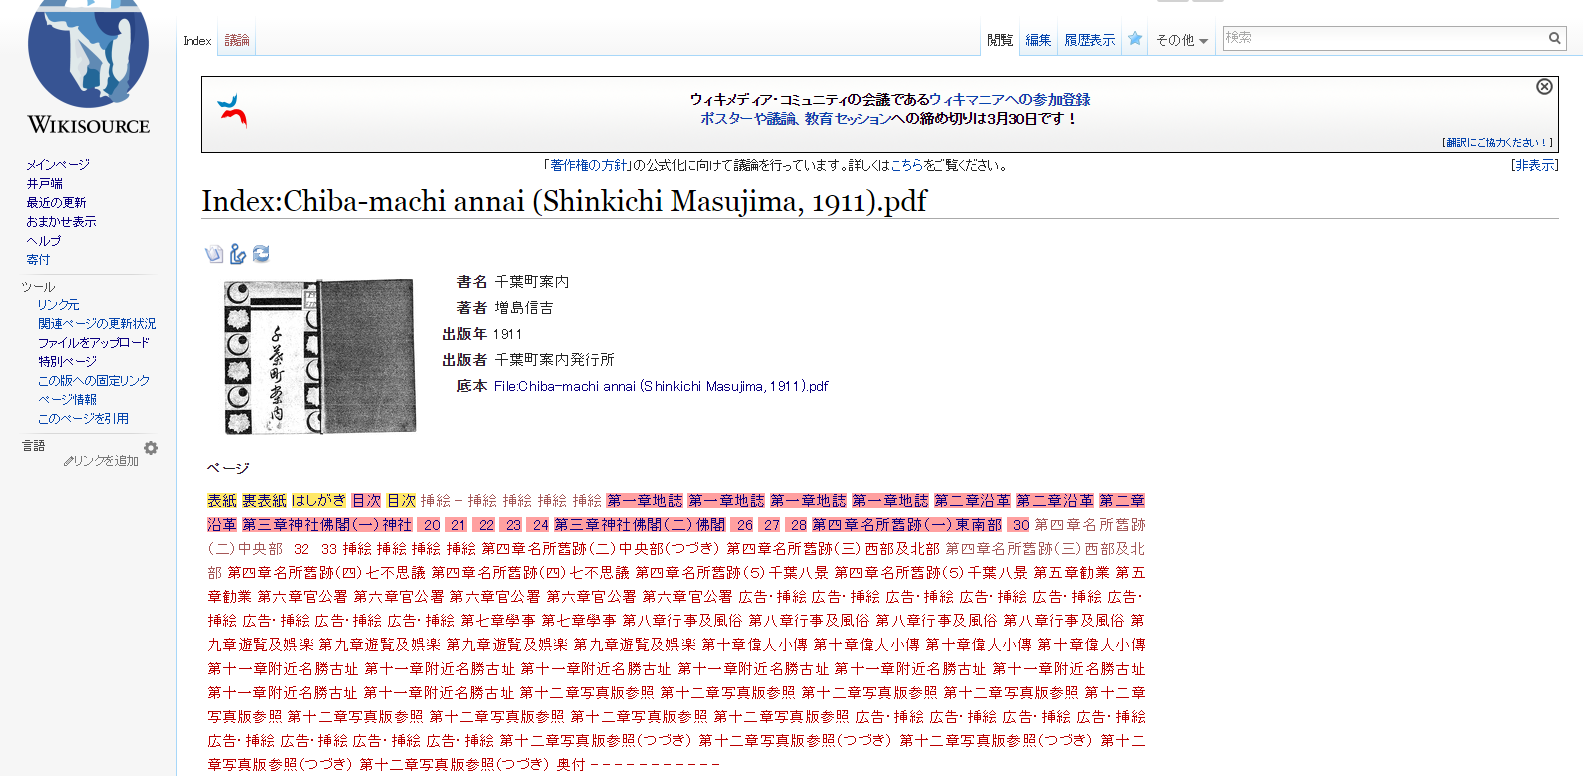 Index Chiba machi annai  Shinkichi Masujima  1911 .pdf   Wikisource.png